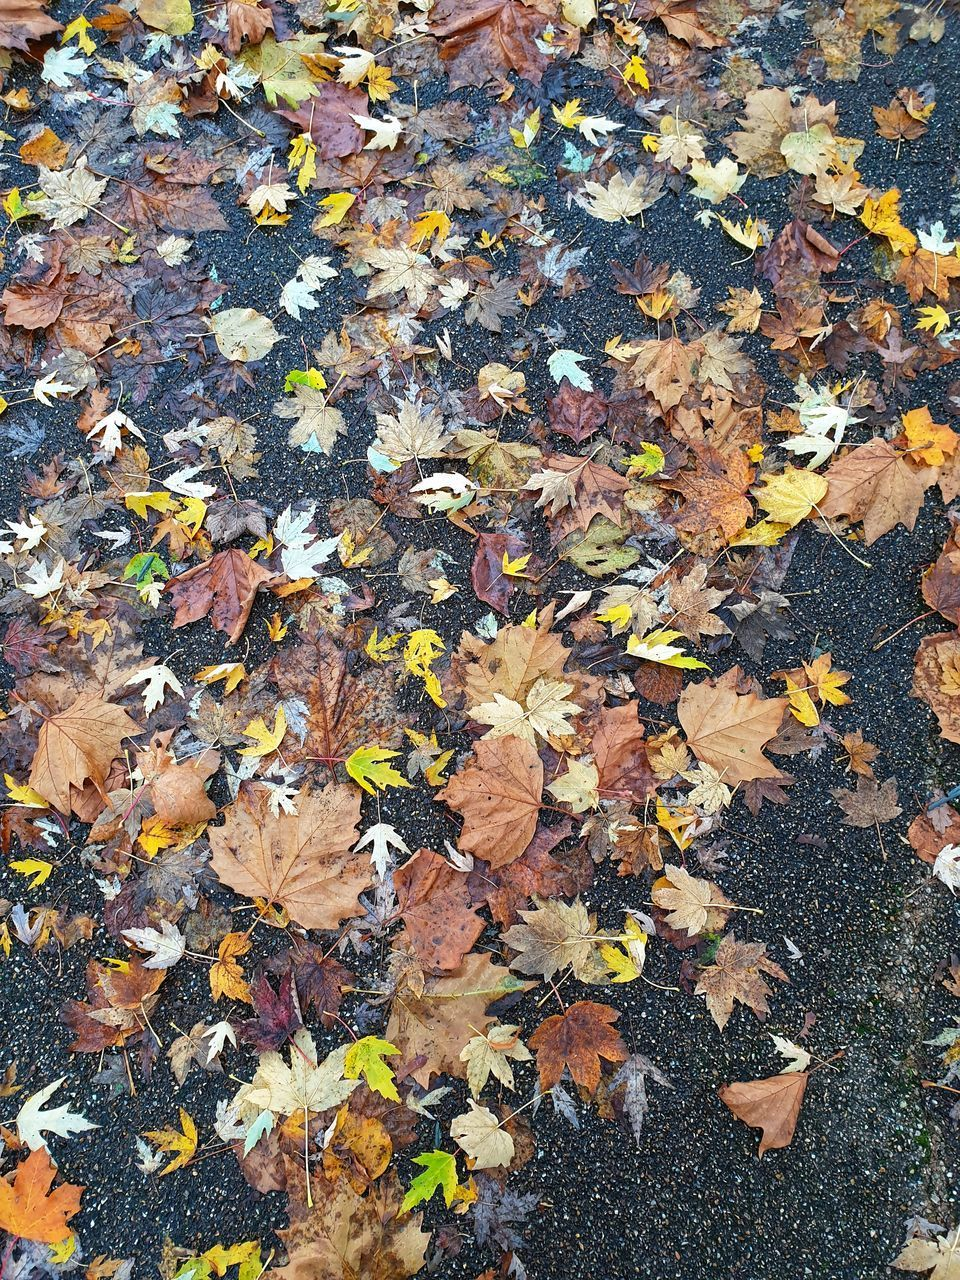 HIGH ANGLE VIEW OF MAPLE LEAVES ON FALLEN TREE DURING AUTUMN